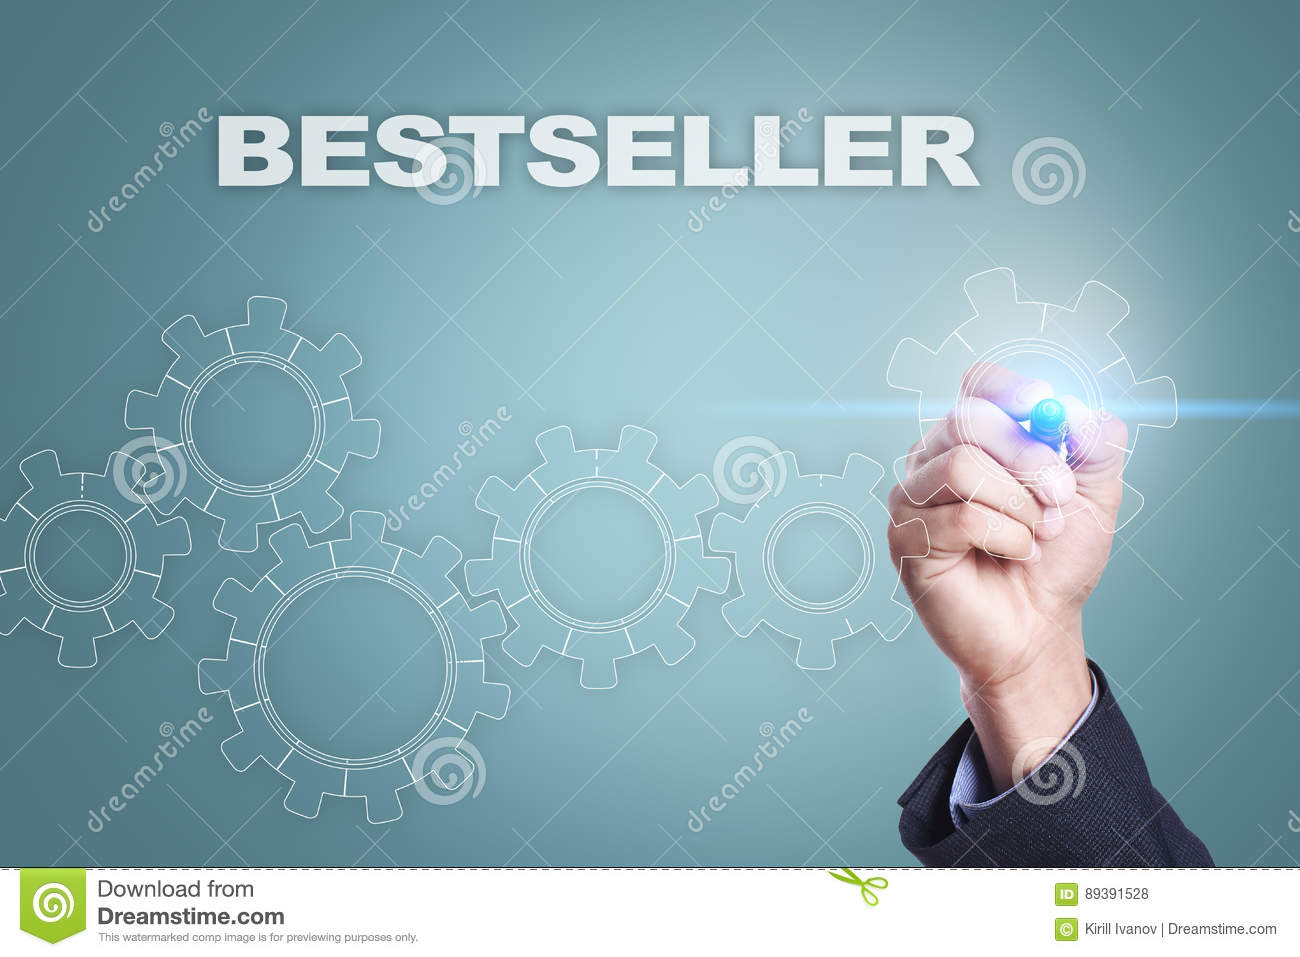 Businessman drawing on virtual screen. bestseller concept